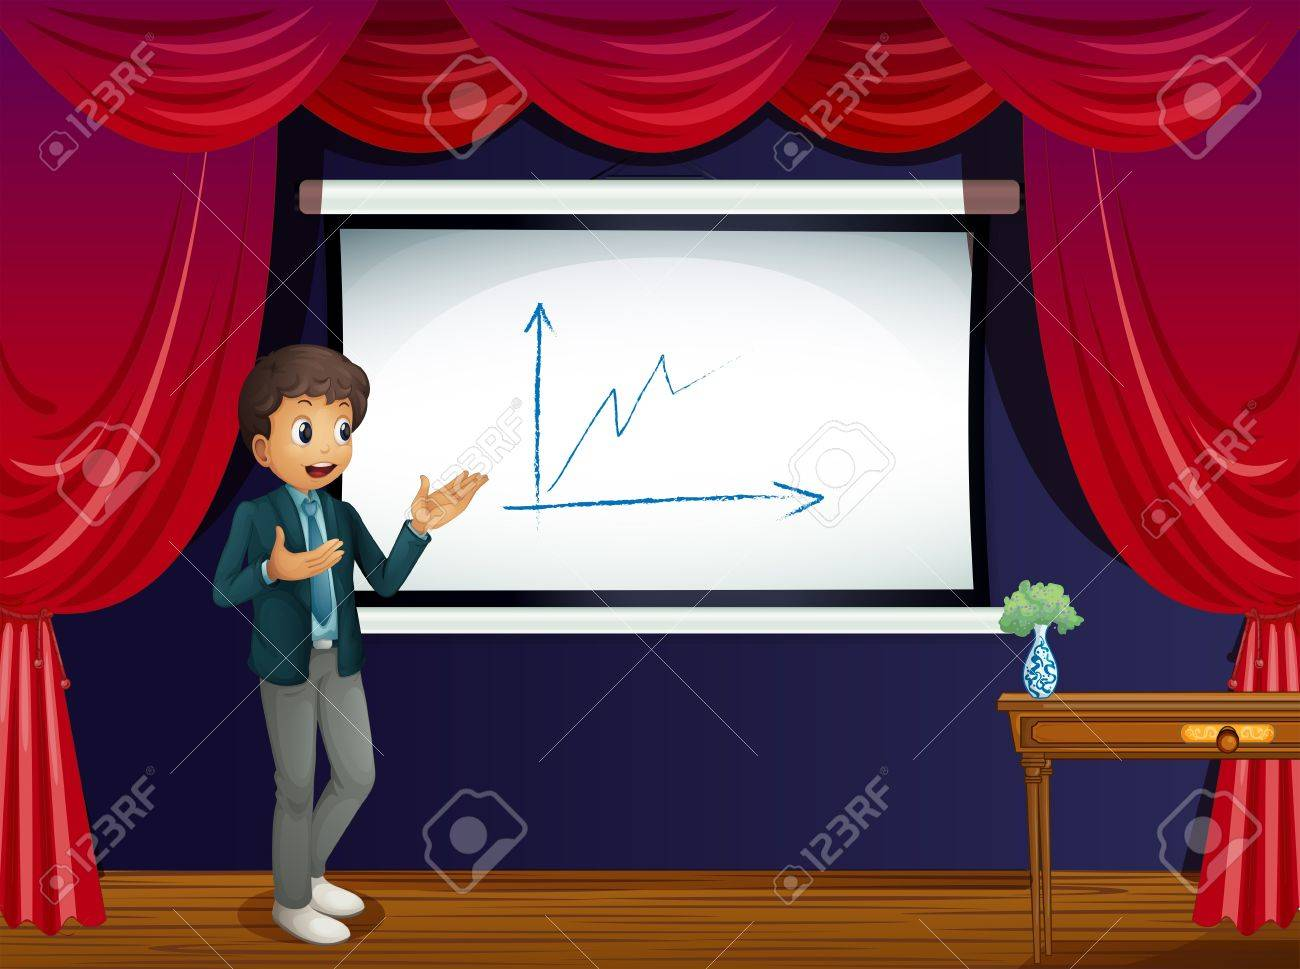 Theater curtains download free vector art stock graphics amp images - Wood Stage Illustration Of A Boy Reporting At The Stage